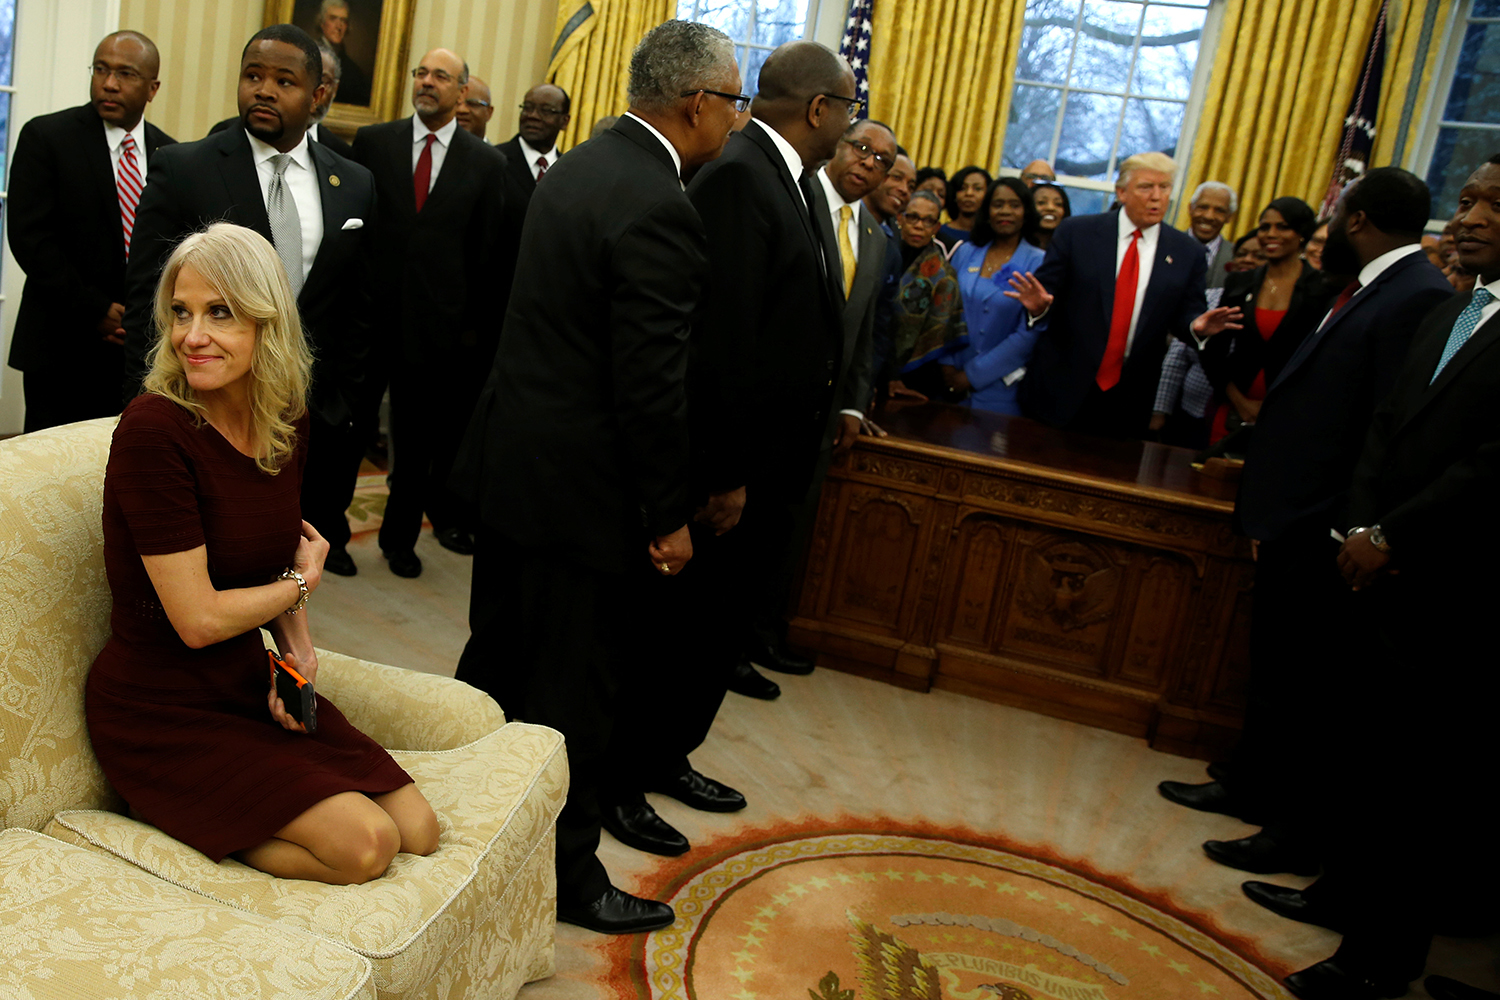 WASHINGTON 2017-02-27 Senior advisor Kellyanne Conway (L) attends as U.S. President Donald Trump (behind desk) welcomes the leaders of dozens of historically black colleges and universities (HBCU) in the Oval Office at the White House in Washington, U.S. February 27, 2017. REUTERS/Jonathan Ernst TPX IMAGES OF THE DAY Photo: / REUTERS / TT / kod 72000